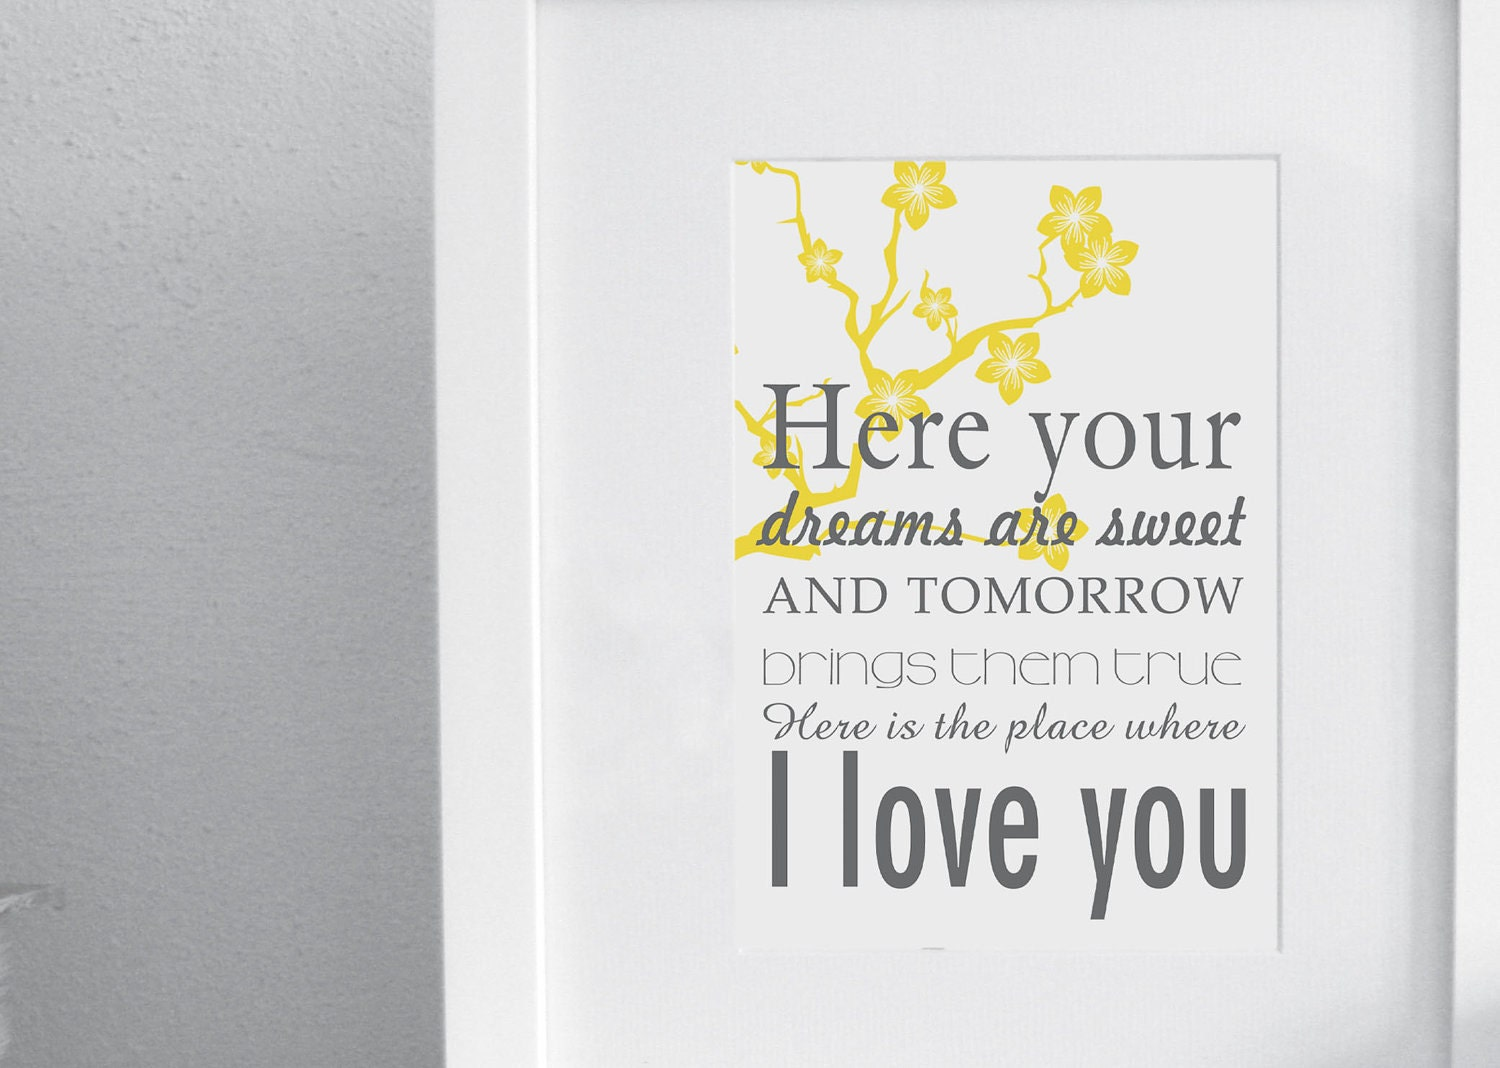 I love you print - Rue's lullaby - The Hunger Games